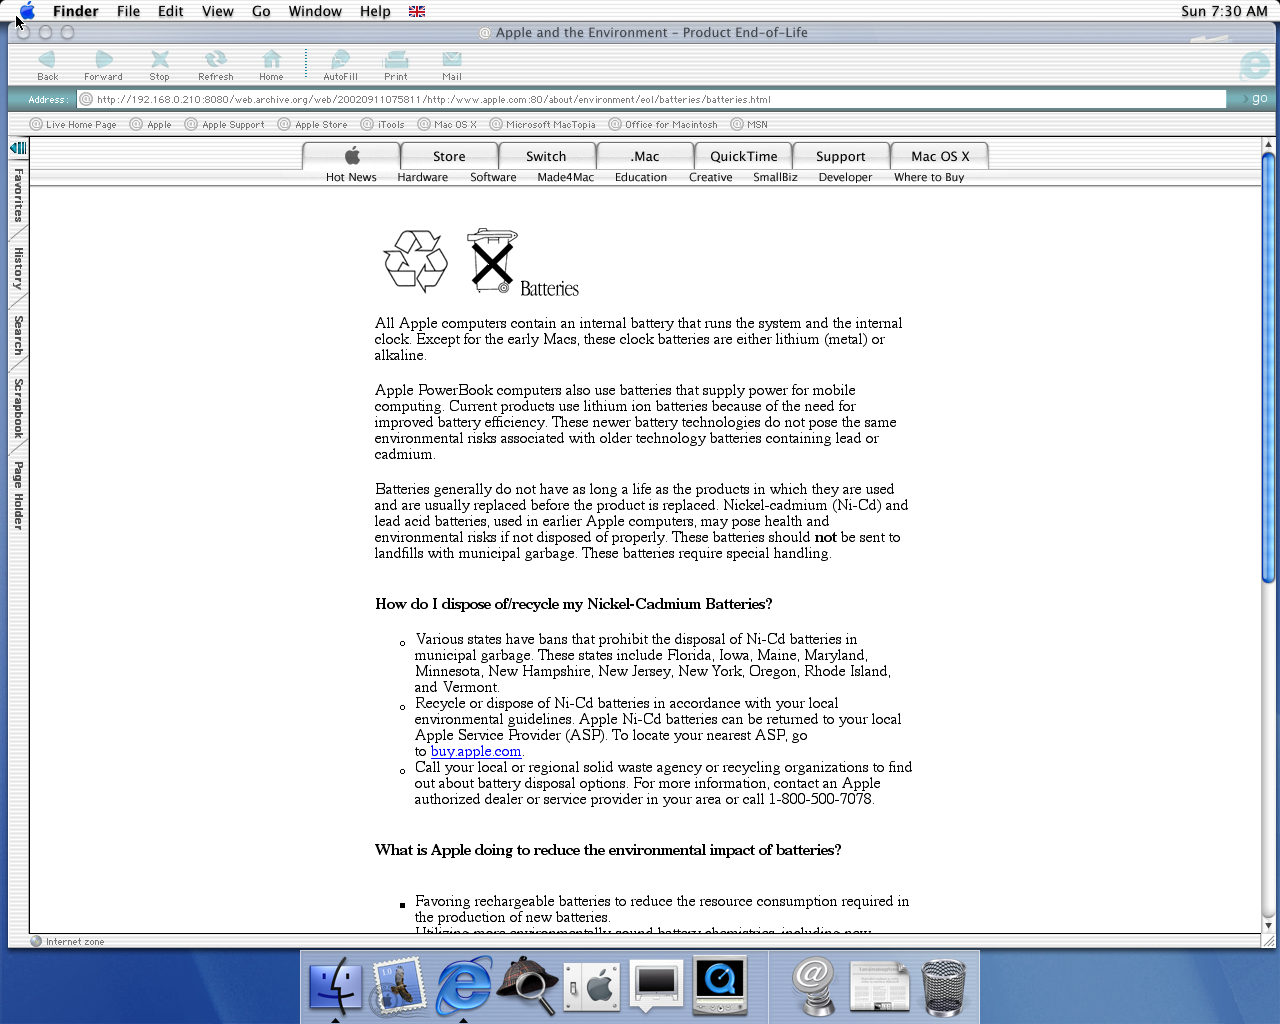 OS X 10.0 PPC with Microsoft Internet Explorer 5.1 for Mac Preview displaying a page from Apple.com archived at September 11, 2002 at 07:58:11